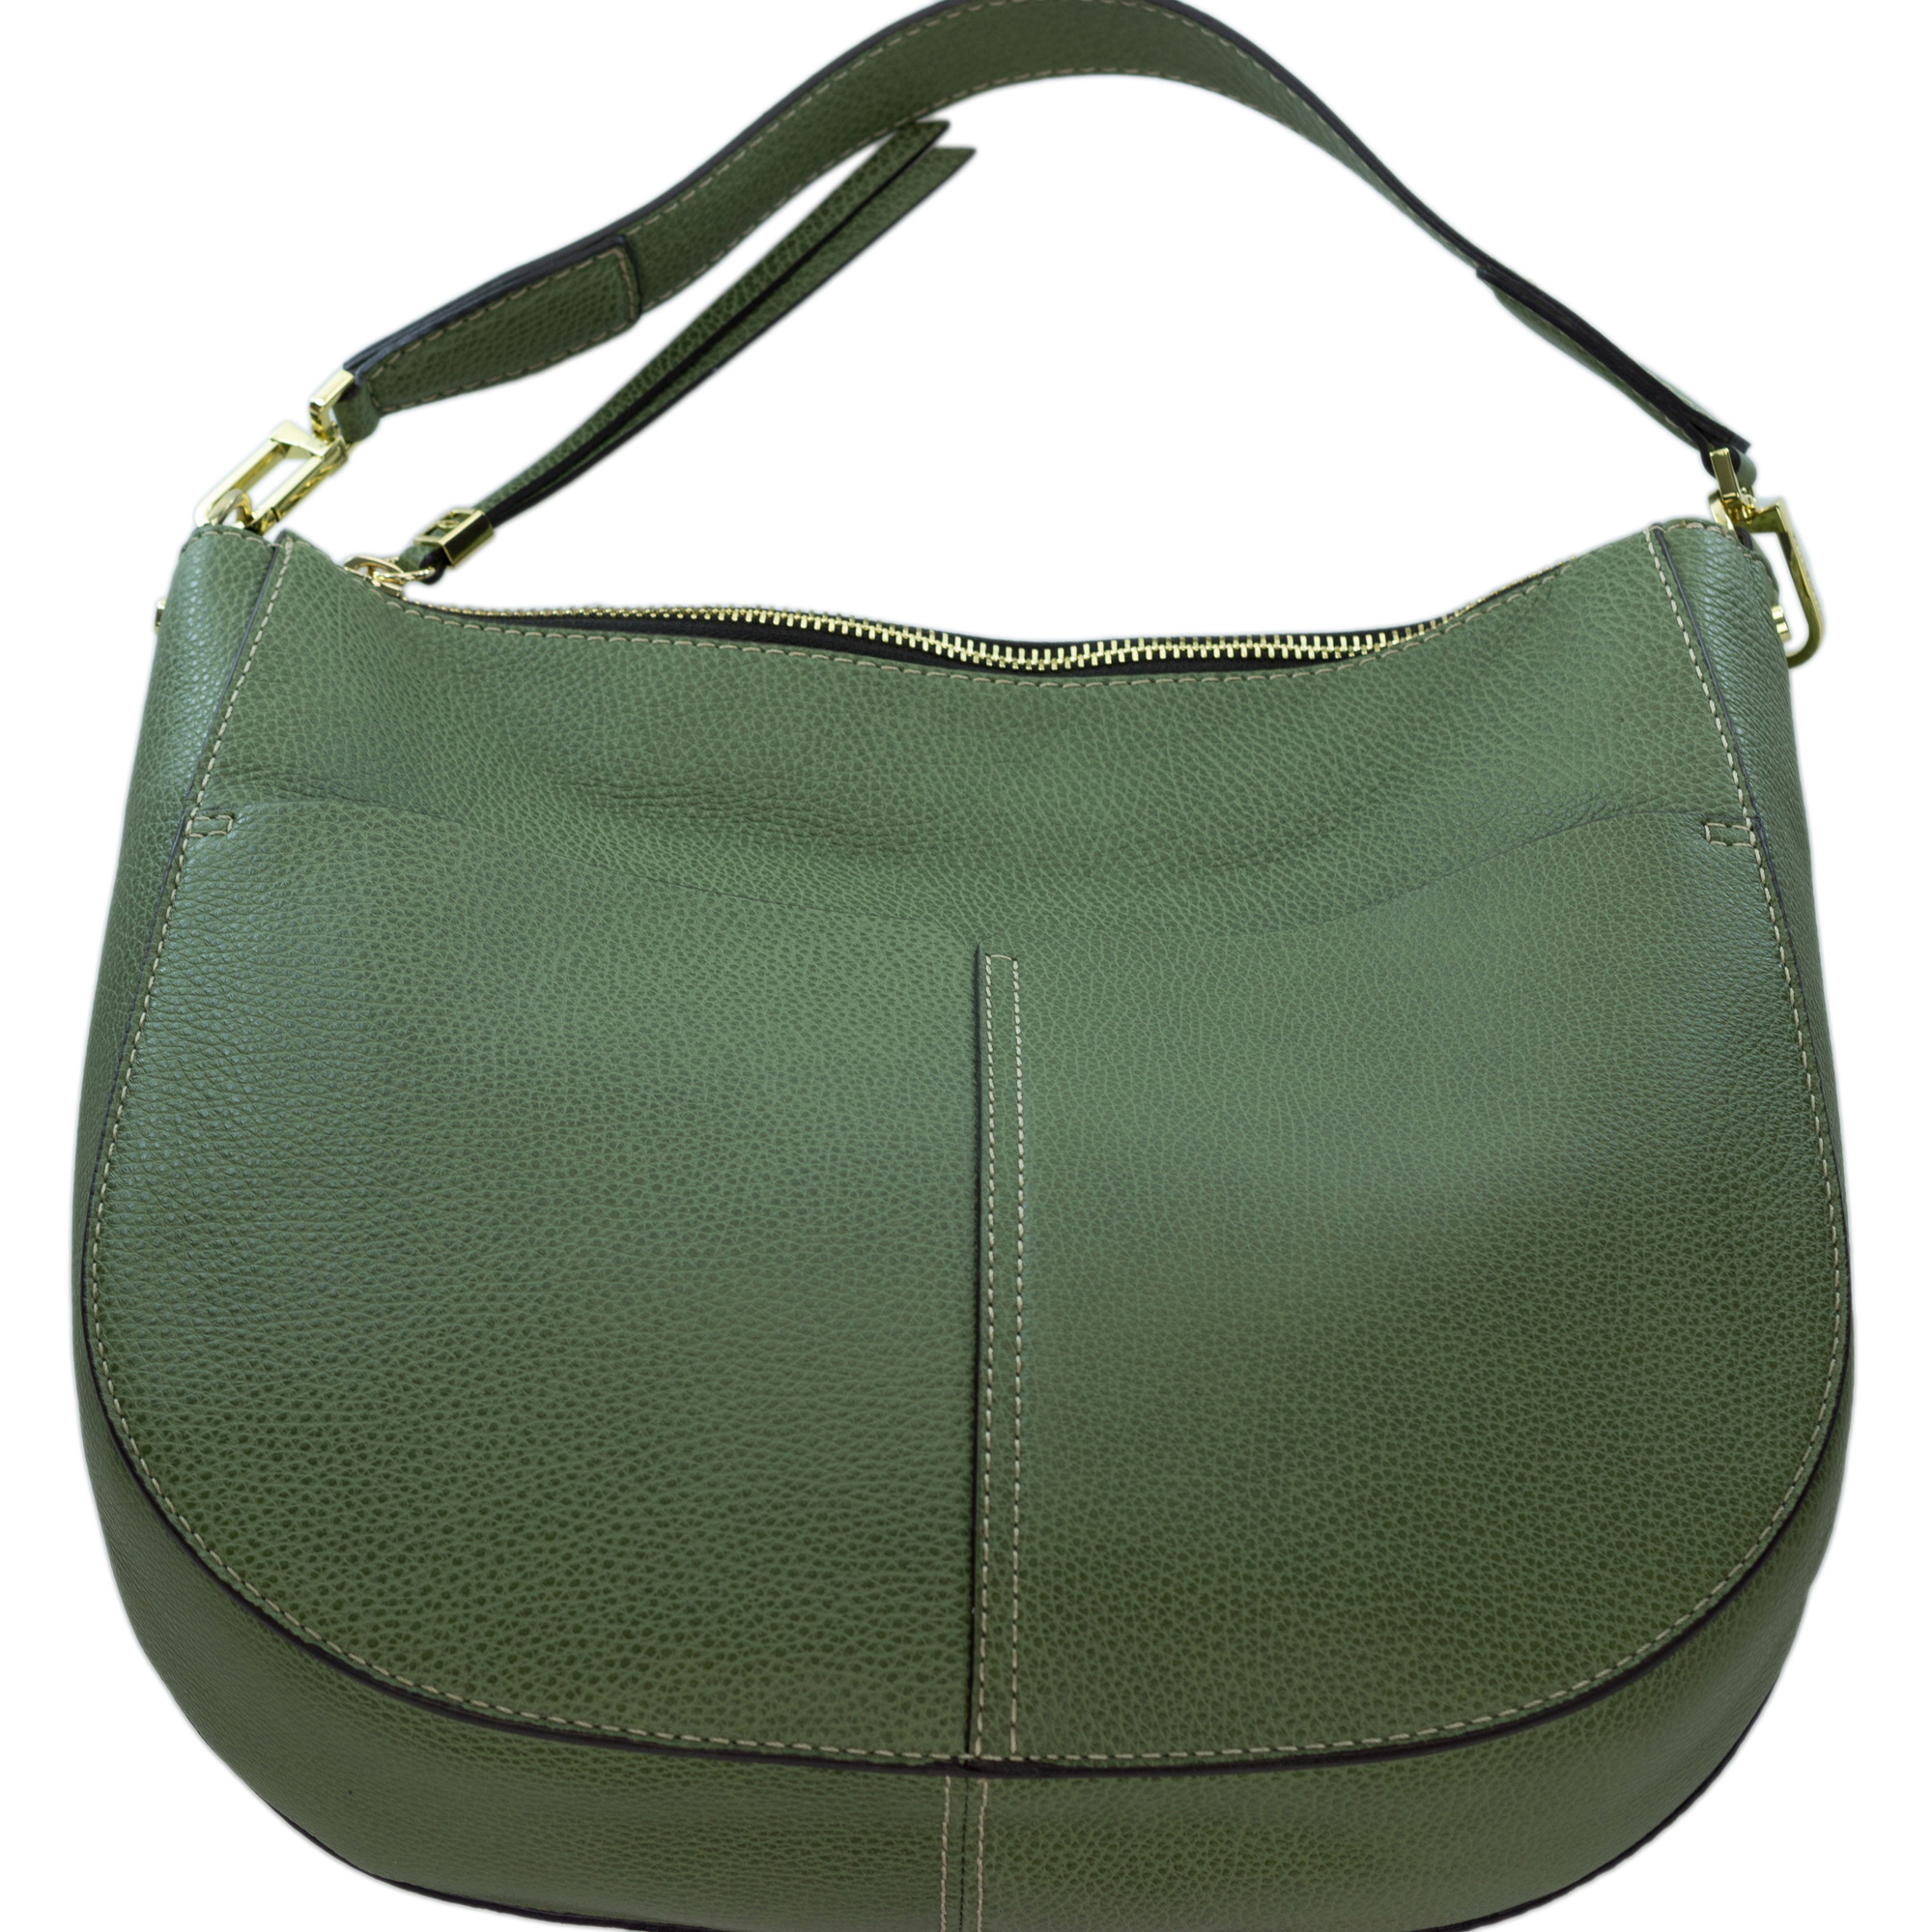 2645160353f6 Gianni Chiarini Italian Made Moss Green Pebbled Leather Large Front Pockets  Hobo Bag